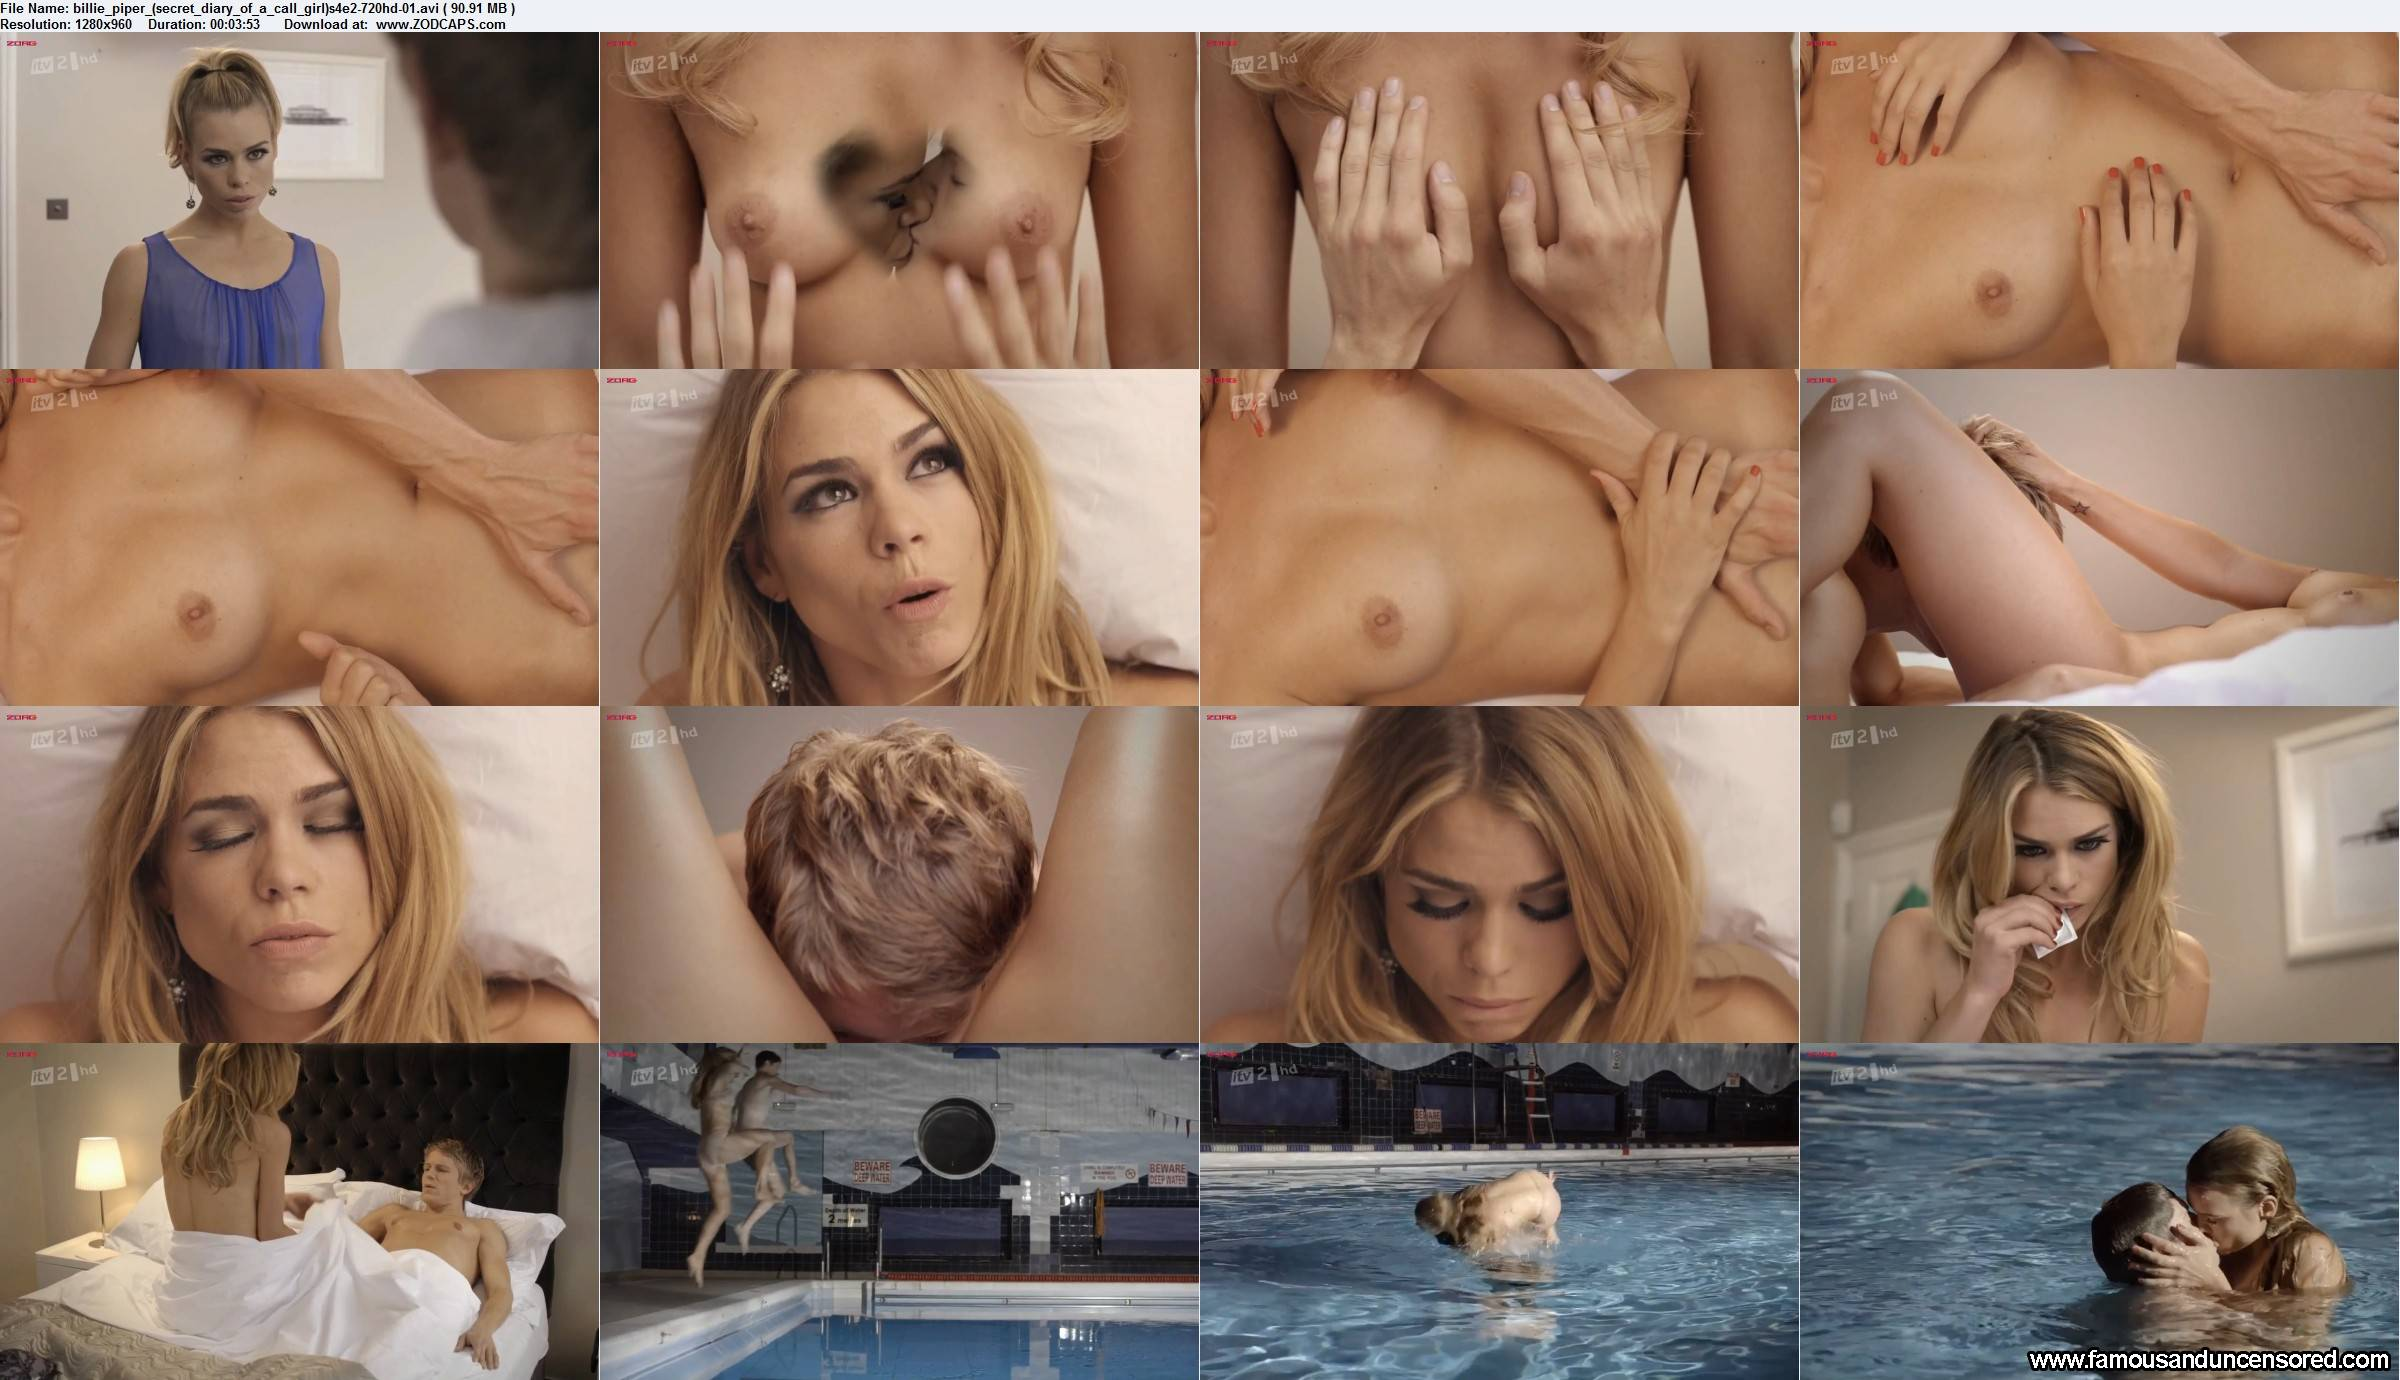 Nudes of secret diary of a call girl season 1 billie piper 3